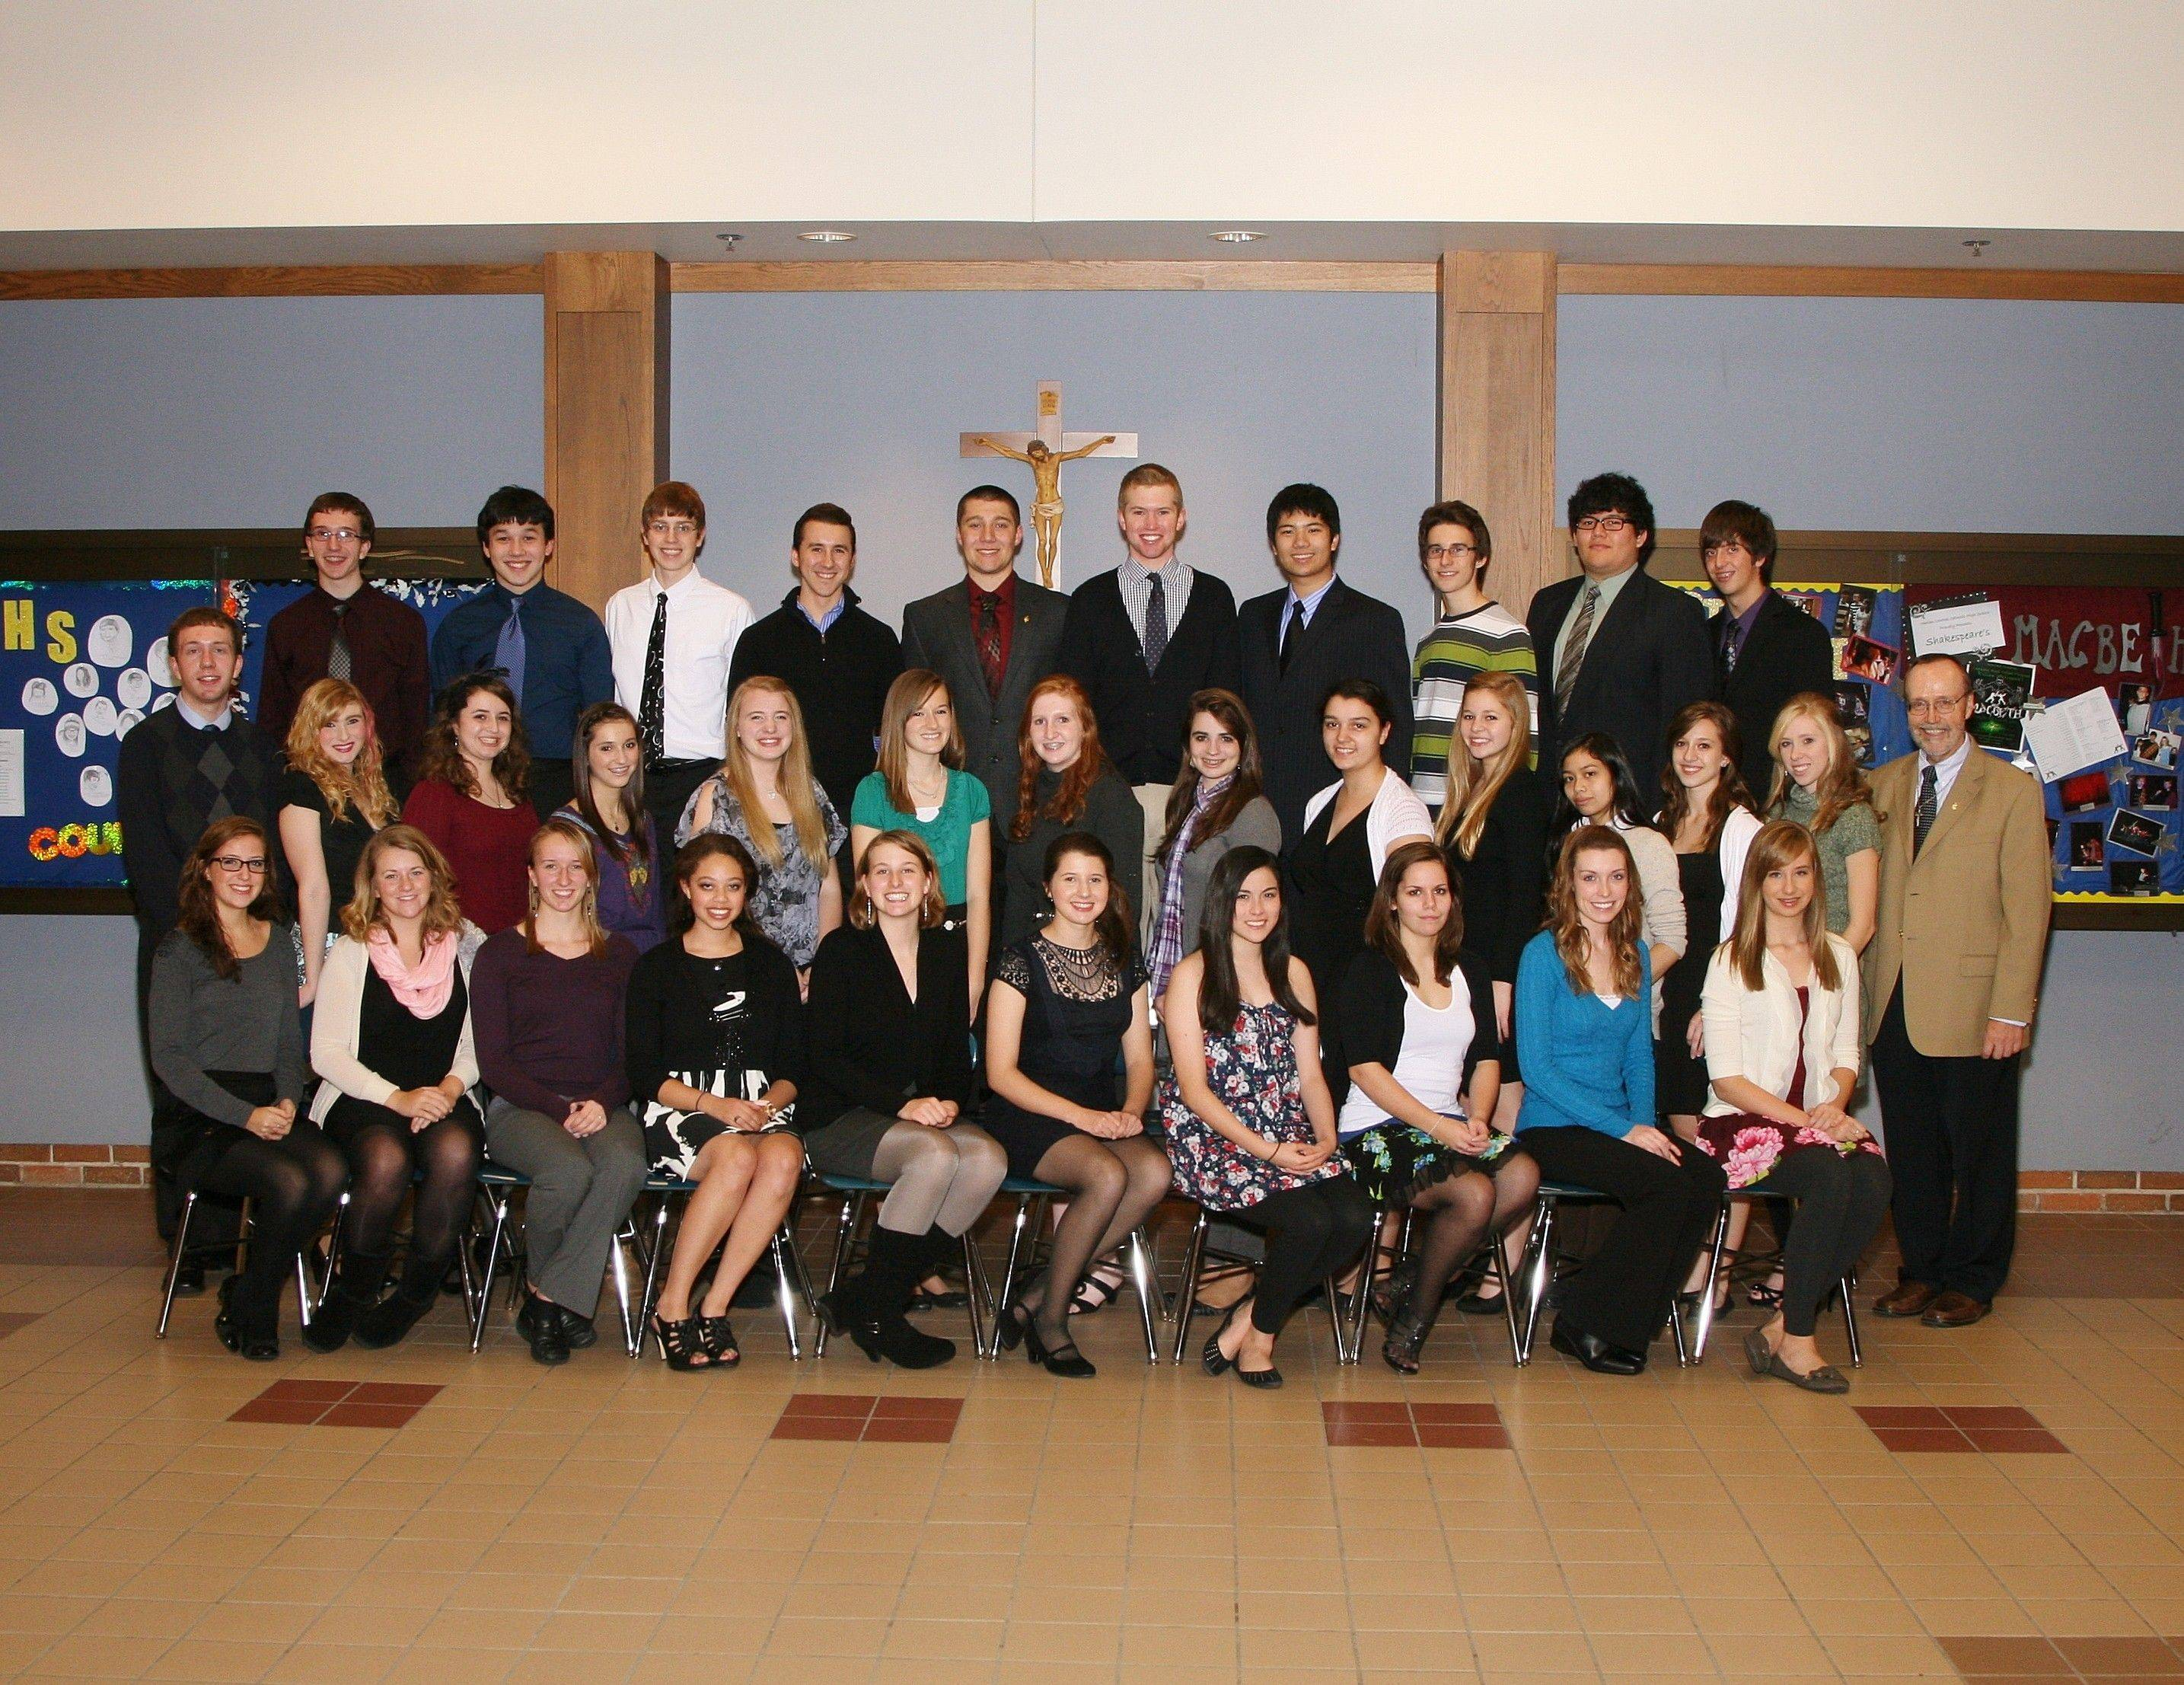 All 2011-12 Tri-M Honor Society members at Marian Central Catholic High School, are from left, front row, Katie Simmons, Claire Castetter, Katrina Hamilton-Smith, Grace John, Claire Gillespie, Rachel DiPirro, Lisbeth Hernandez, Cecilia Adams, Emily Conkling and Danielle Carlson; middle row, Michael Fitzpatrick, Heather Bilecki, Mary McCormack, Emily Frazier, Lauren Adams, Lisa DiGirolamo, Megan Graf, Anne-Marie Elsinger, Caroline Jummati, Bethany Bucci, Pam Atadero, Jessica Jenkner, Kailyn Teeter and music director Tom Rome; and back row, Anthony Fitzpatrick, Austin Lee, Robert Morehead, Tim Manion, Mike Gutshall, Jack Murray, Kyle Dionela, Patrick Manion, Yair Agosto and Brandon Wiener.